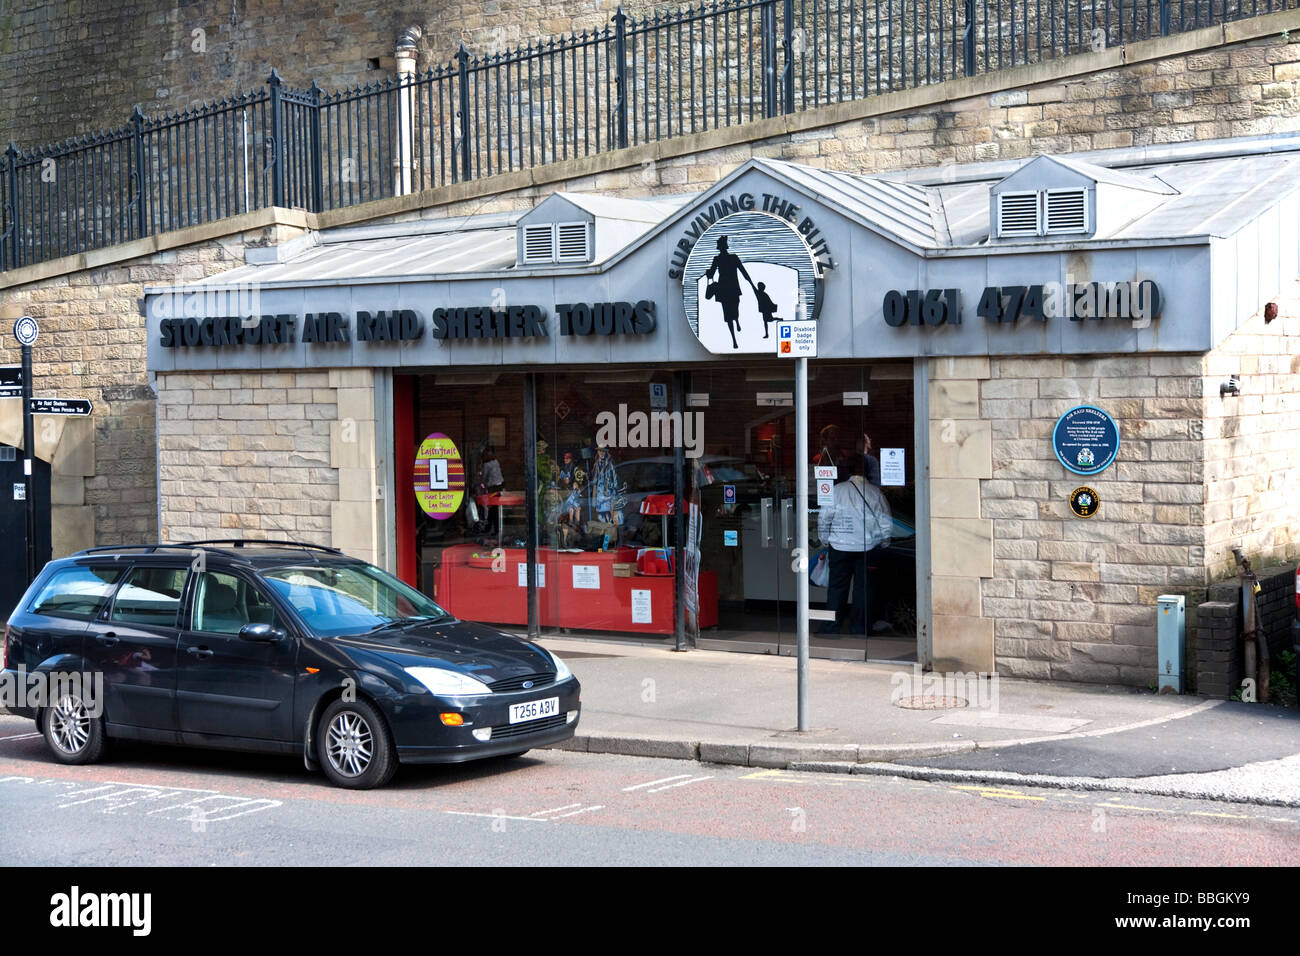 Exterior view Stockport Air Raid Shelters. Stockport, Greater Manchester, United Kingdom. - Stock Image